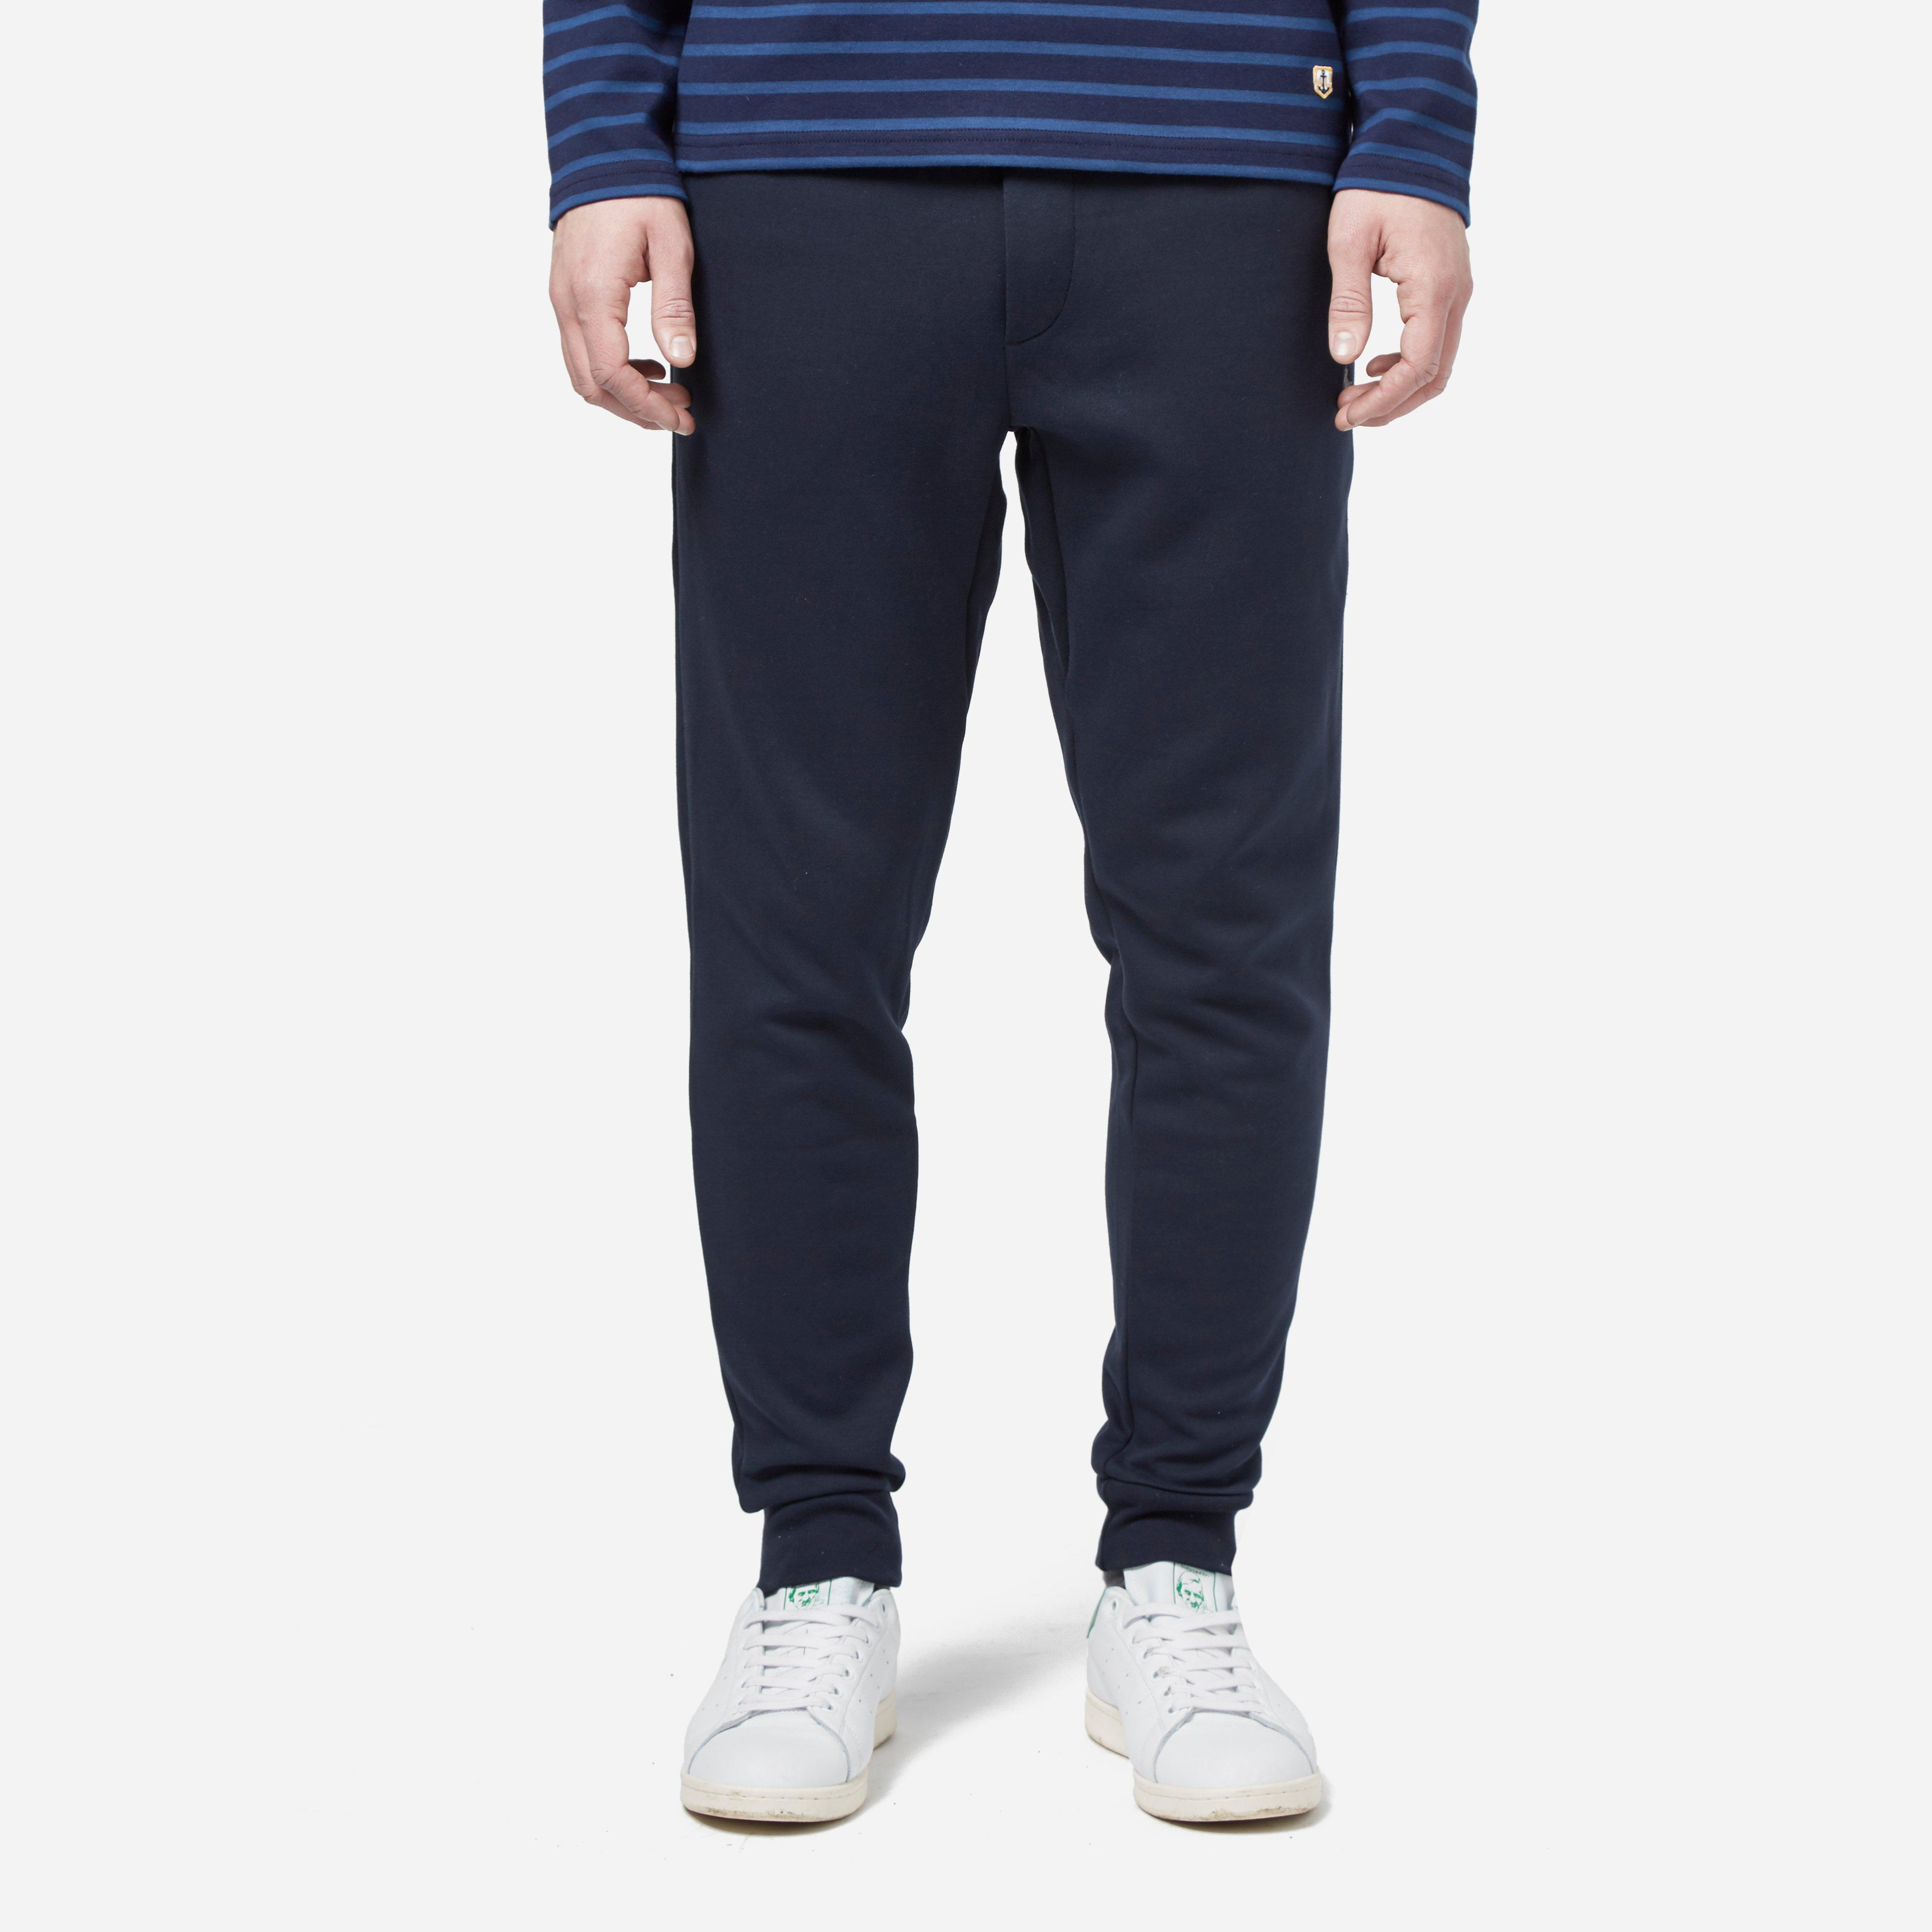 Polo Ralph Lauren Jog Pants